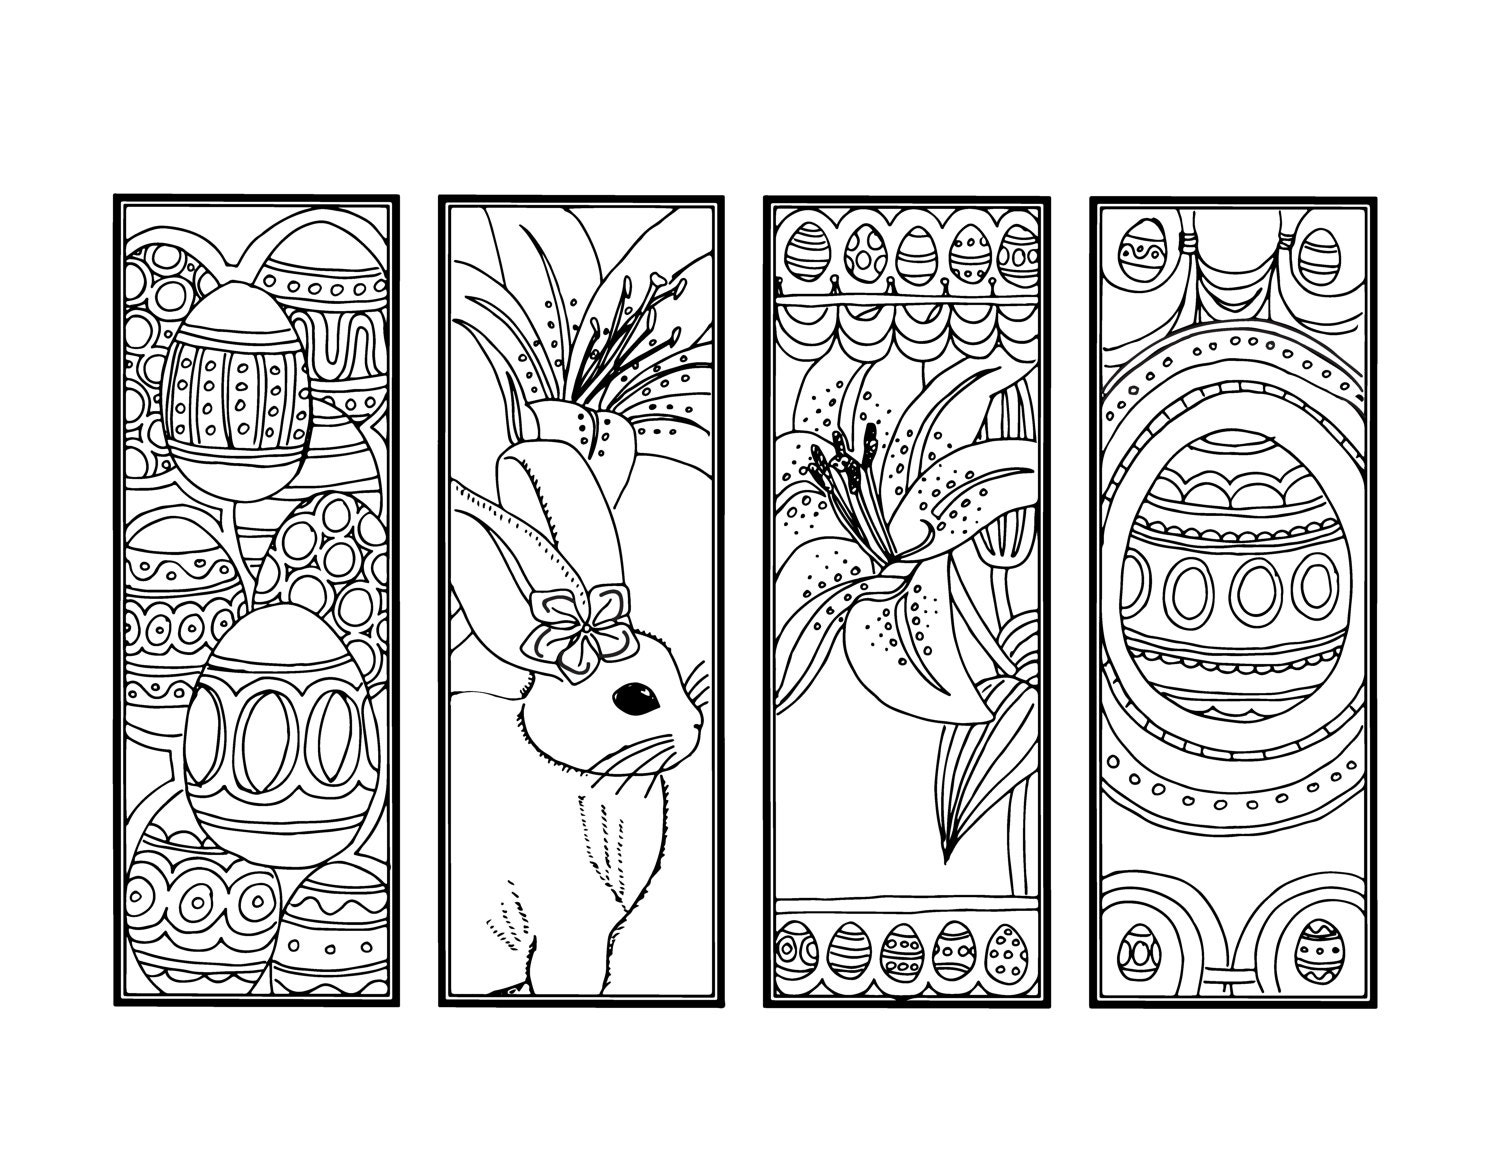 coloring pages bookmarks - photo#18